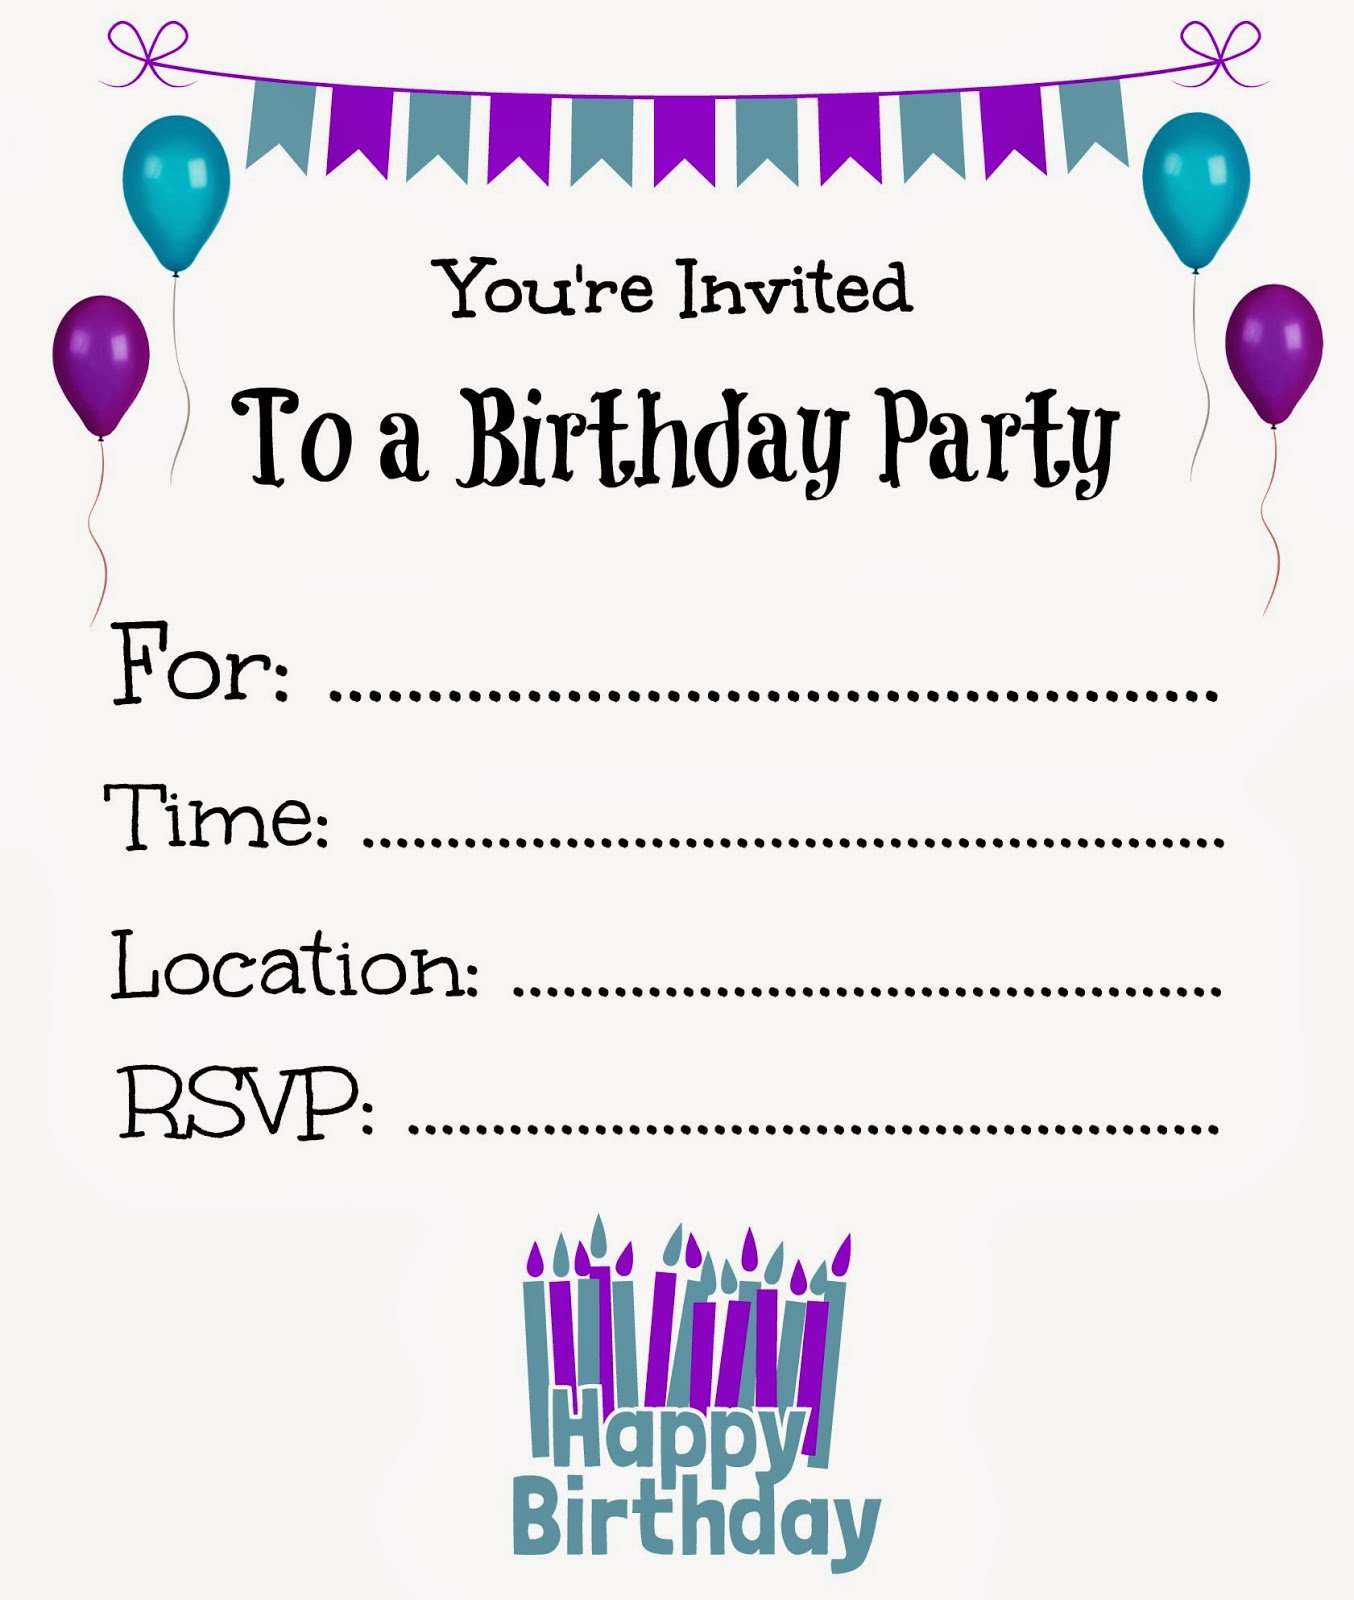 Free Printable Party Invites Templates Free Birthday Invitations - Make Your Own Printable Birthday Cards Online Free